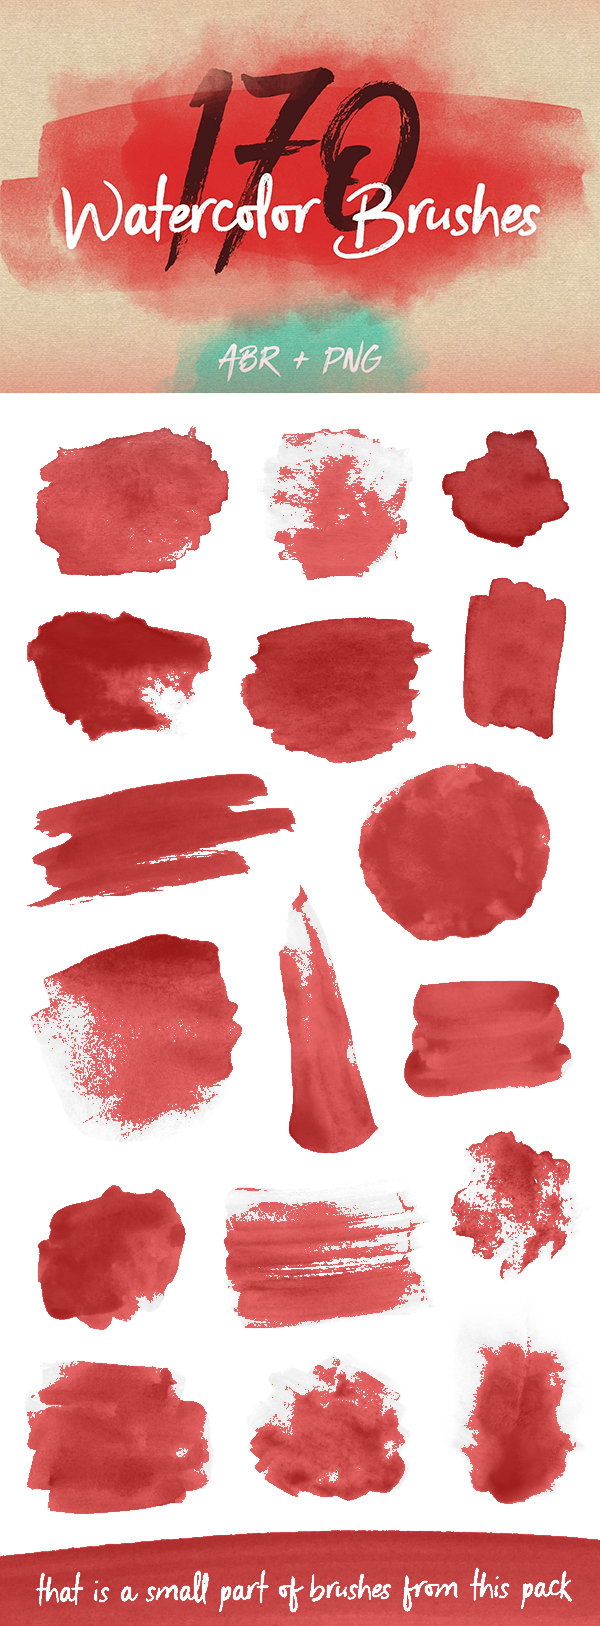 Watercolor Brushes Pack for PS